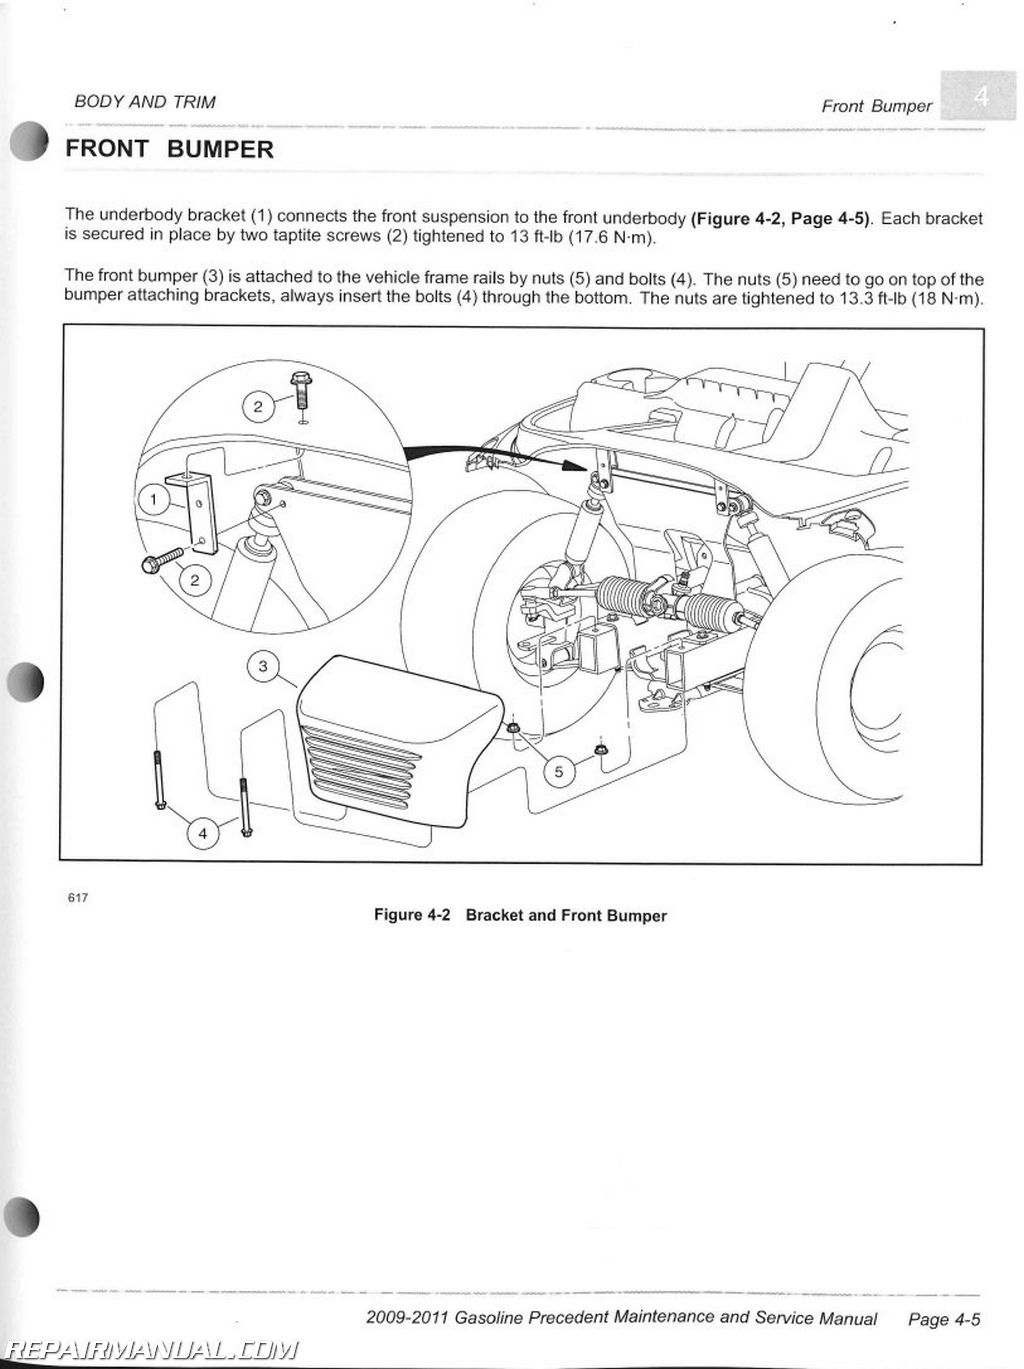 hight resolution of 2009 2011 club car gasoline precedent maintenance and service manual rh repairmanual com club car xrt parts diagram club car carry all parts diagram